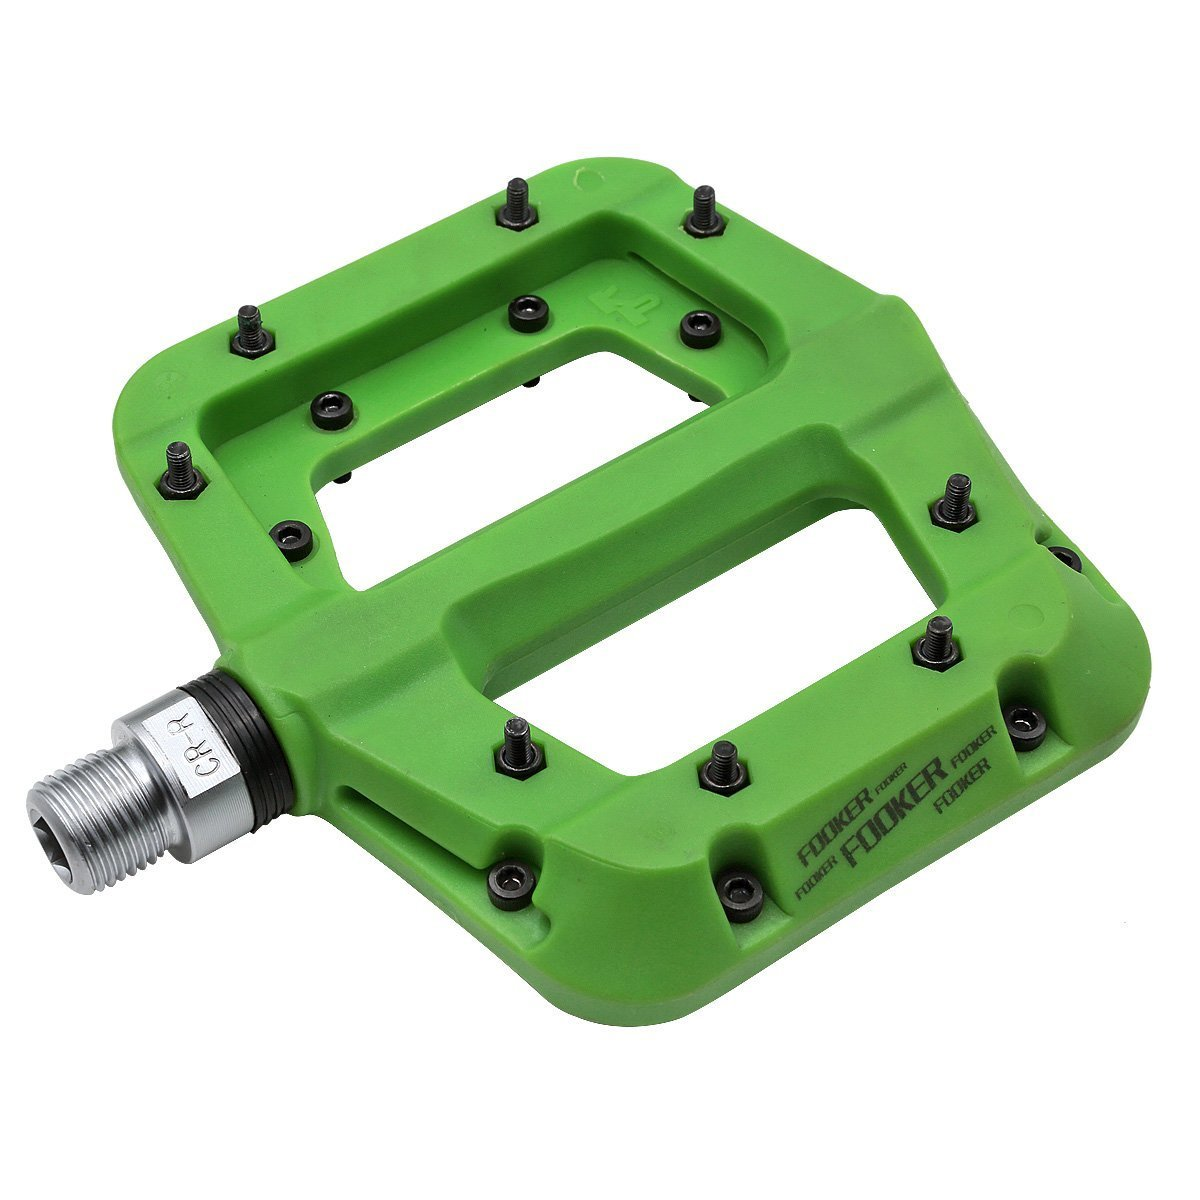 FOOKER MTB Bike Pedal Nylon 3 Bearing Composite 9/31 Mountain Bike Pedals High-Strength Non-Slip Bicycle Pedals Surface for Road BMX MTB Fixie Bikesflat Bike by FOOKER